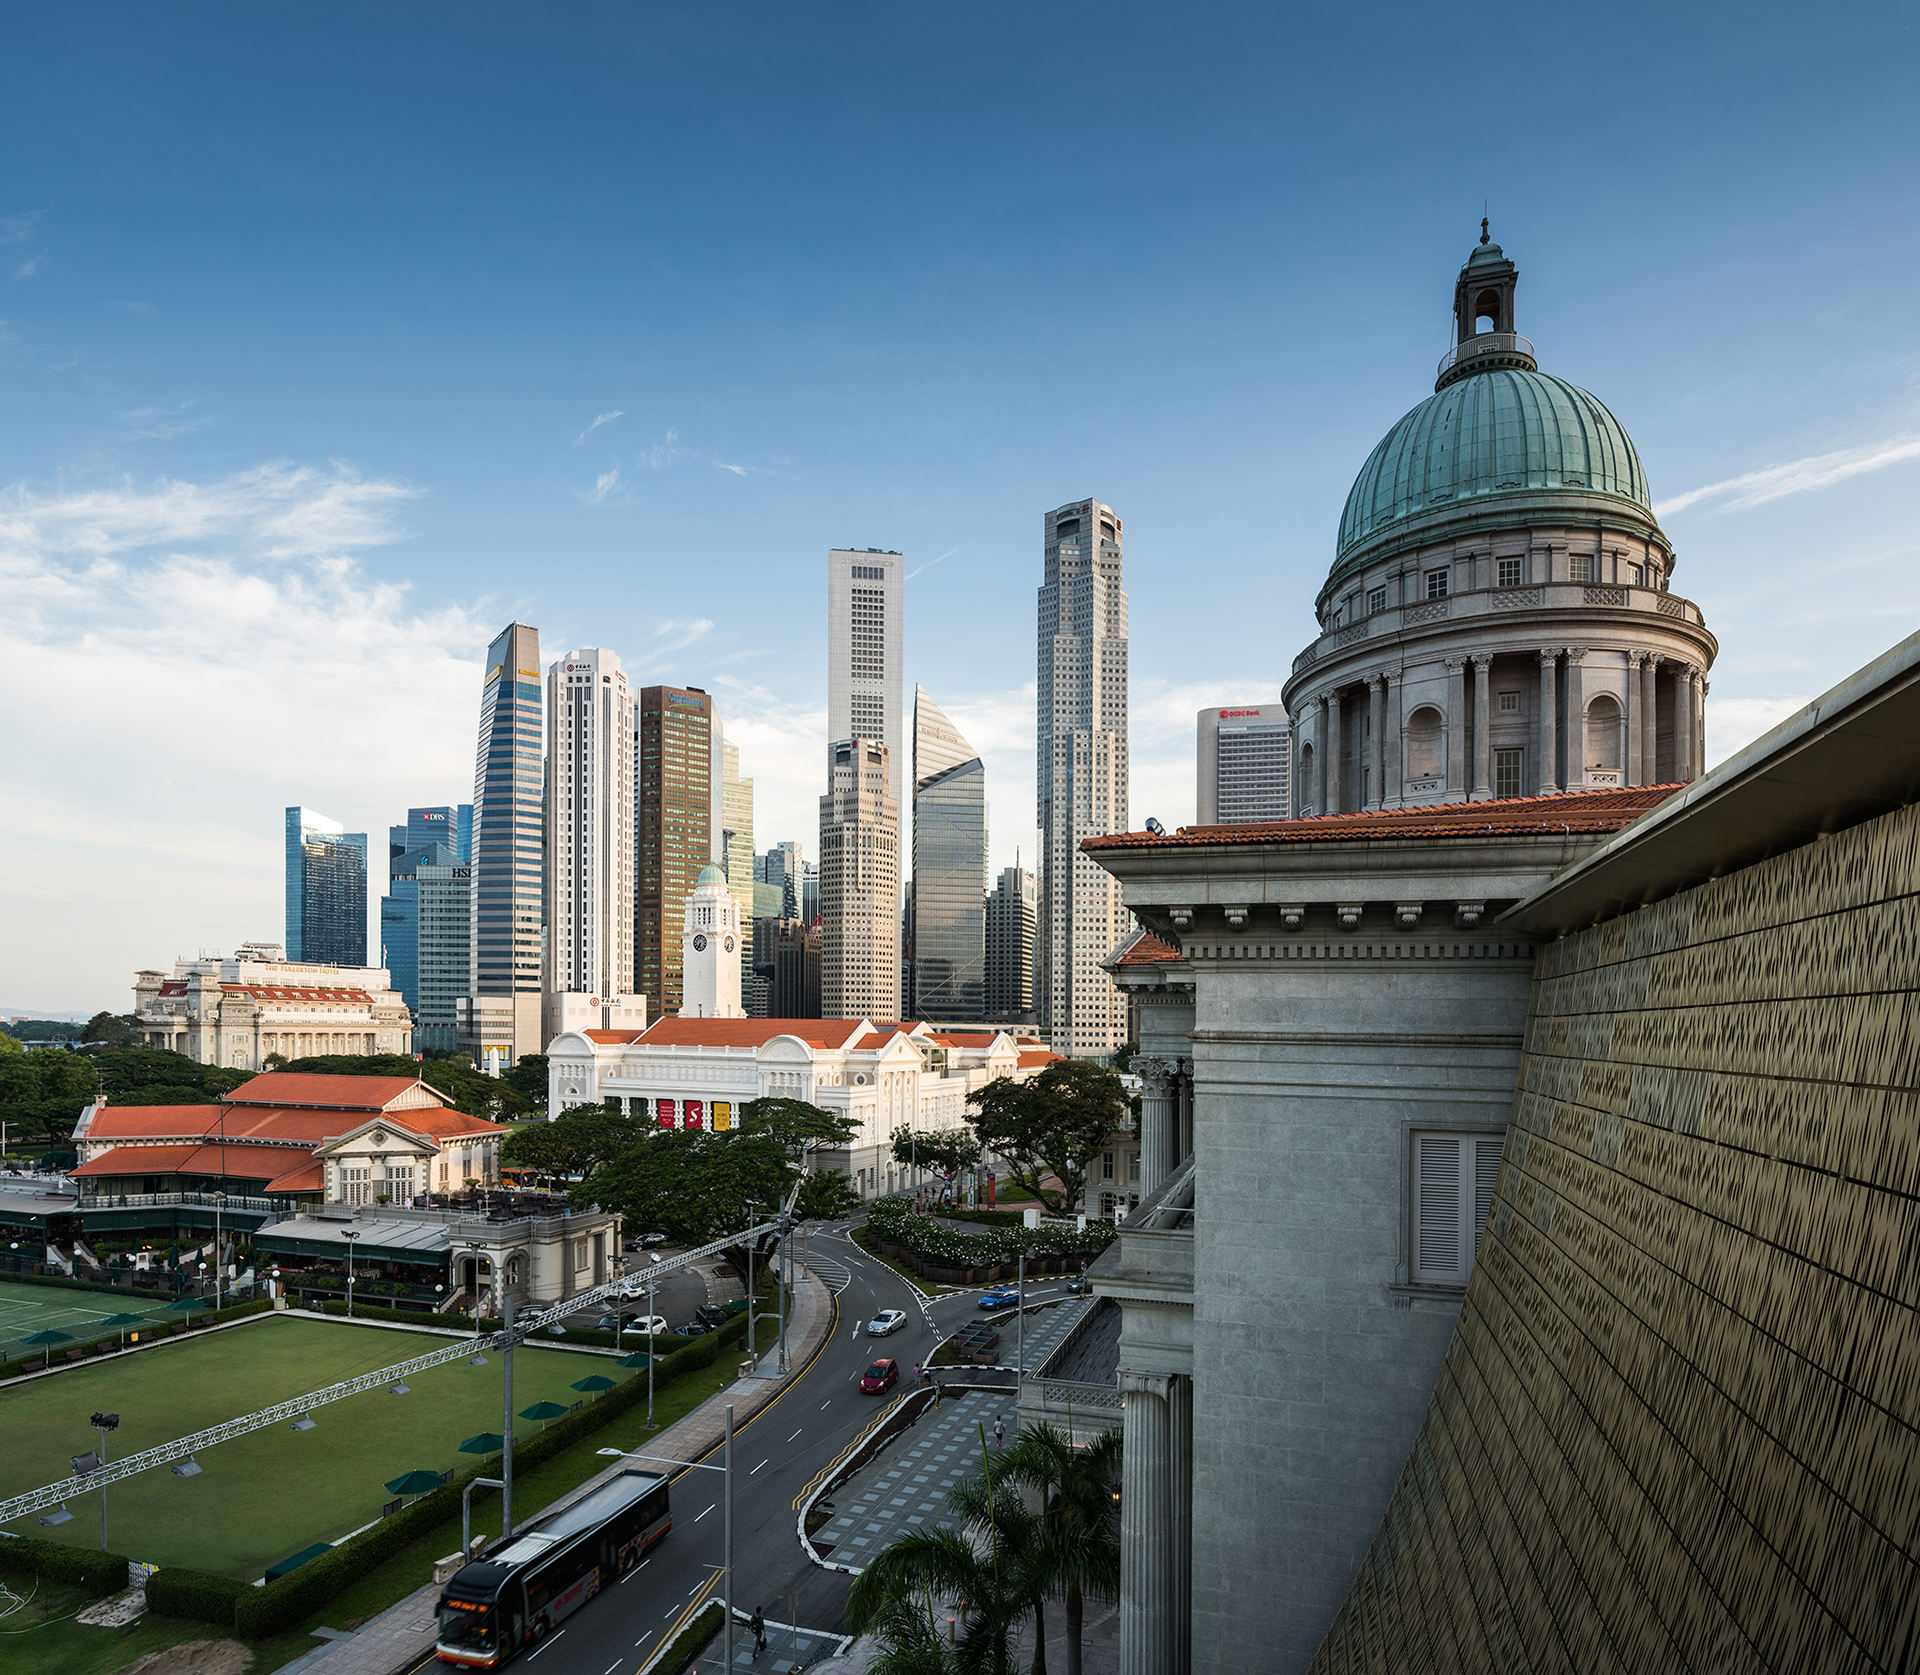 Photography: Exploring Singapore Day & Night